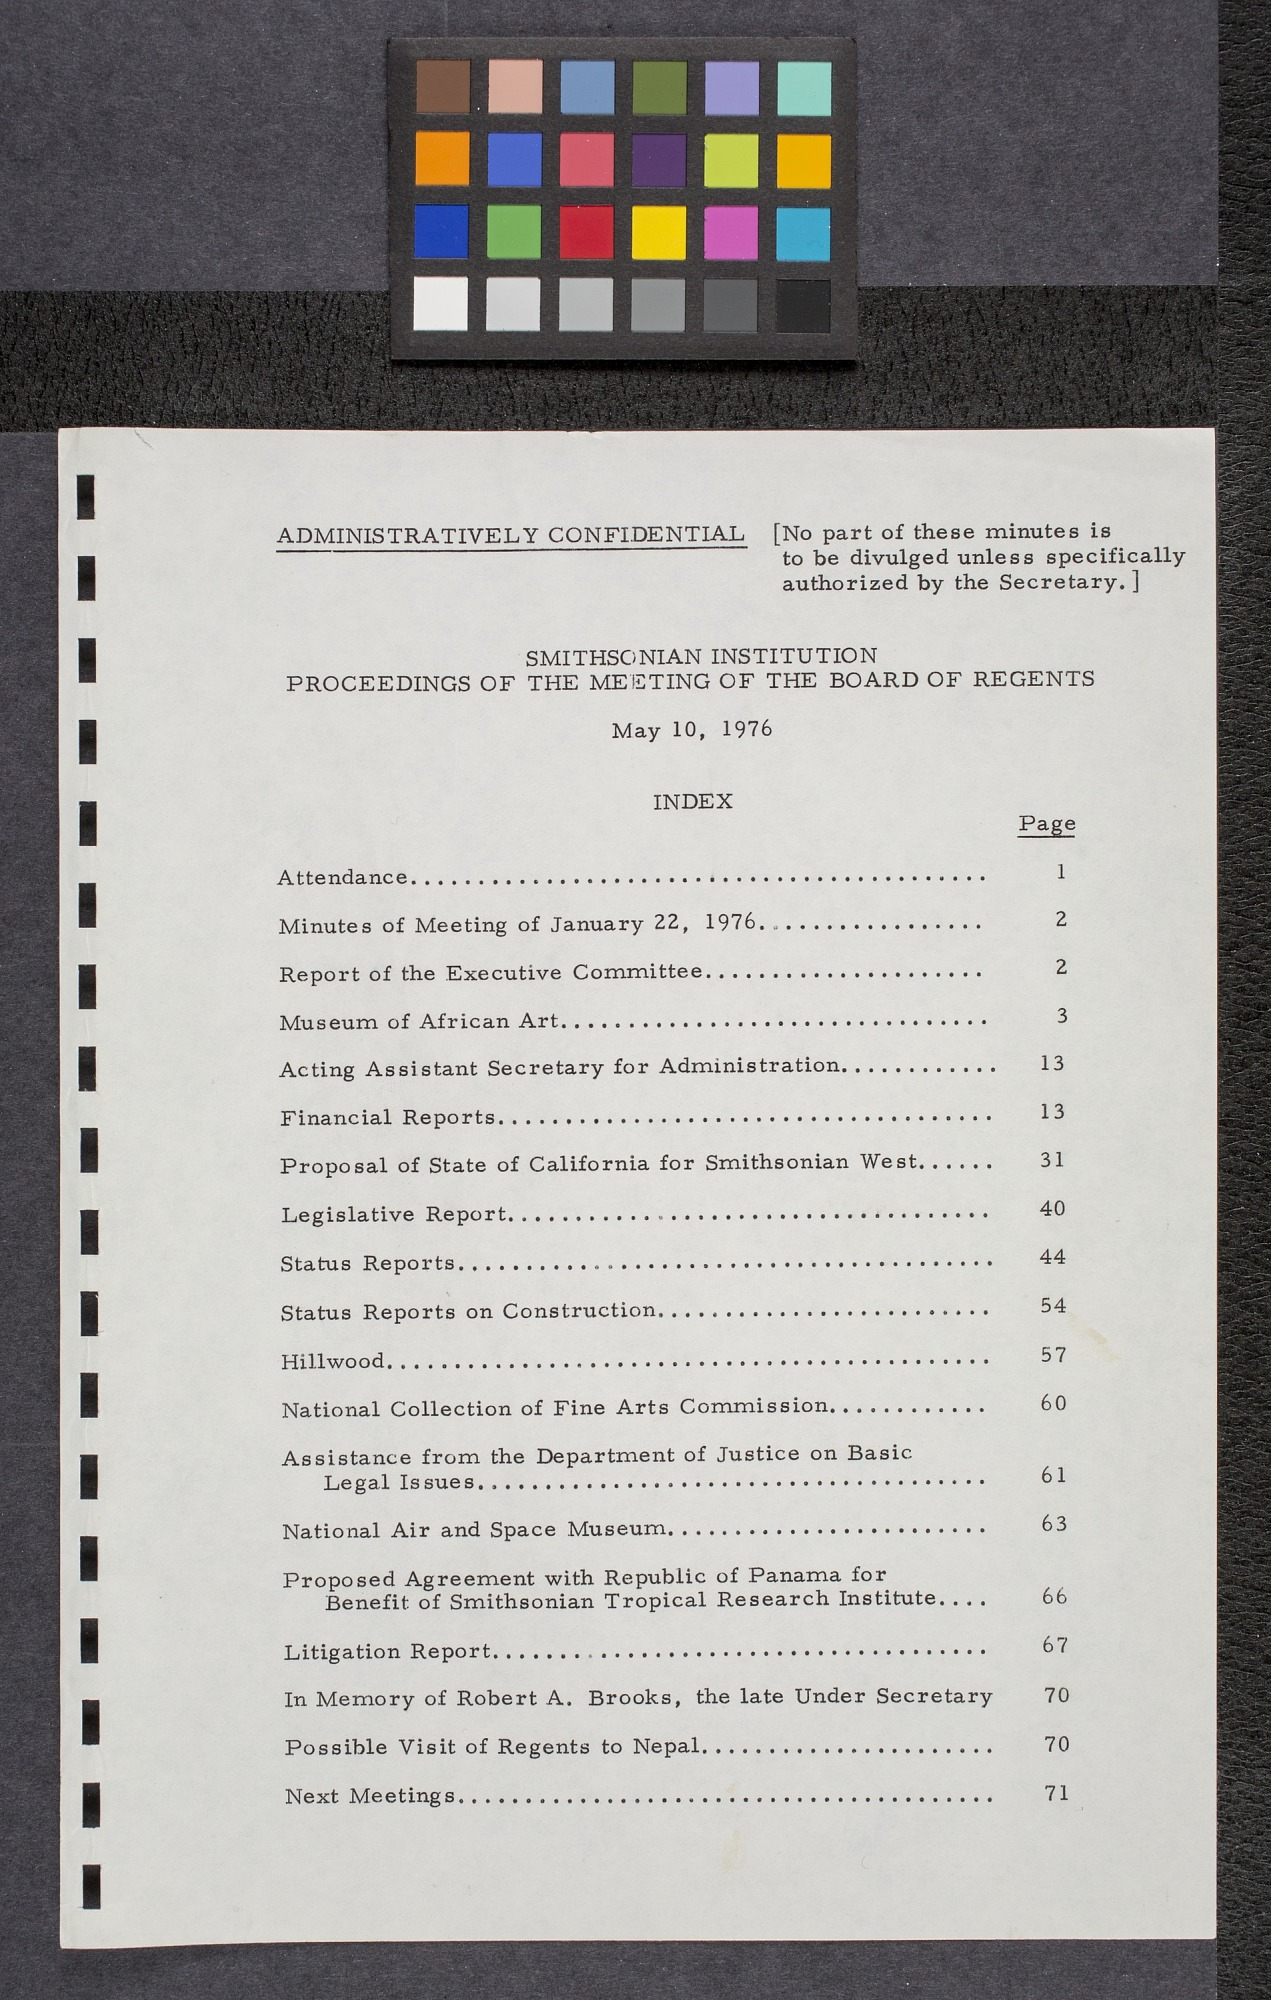 Proceedings of the Board of Regents May 10, 1976